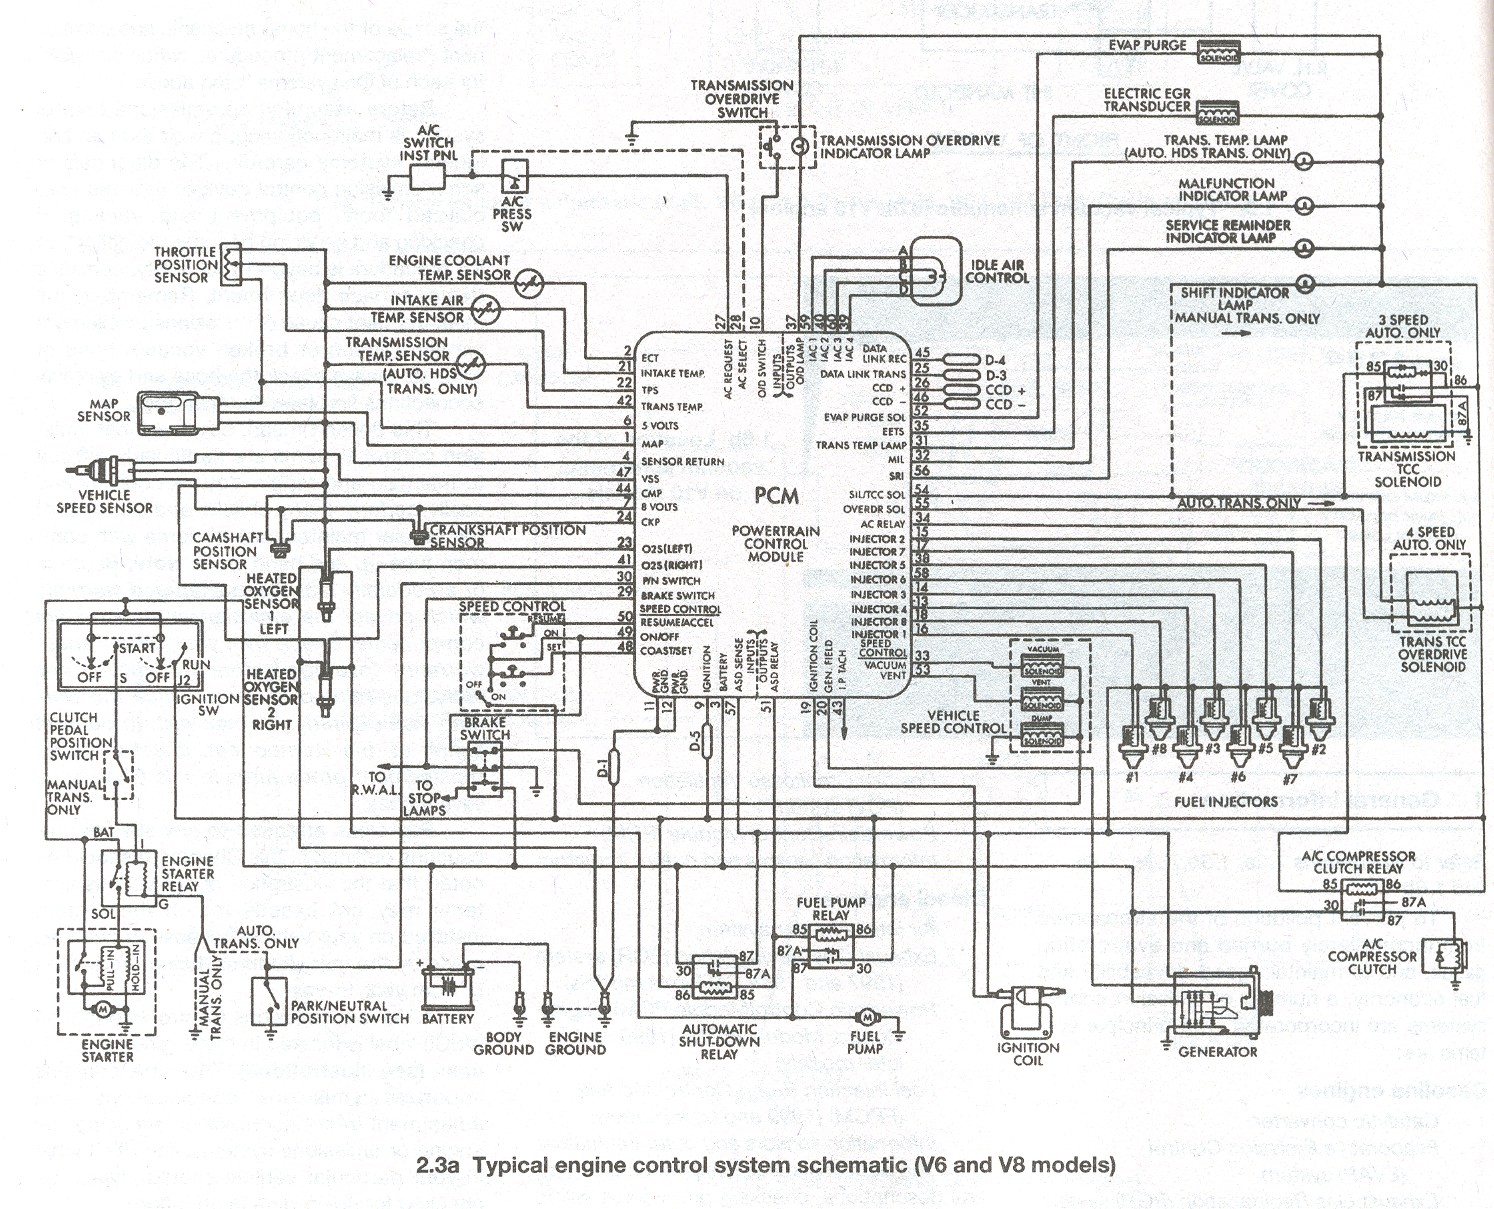 1971 plymouth dash wiring schematic